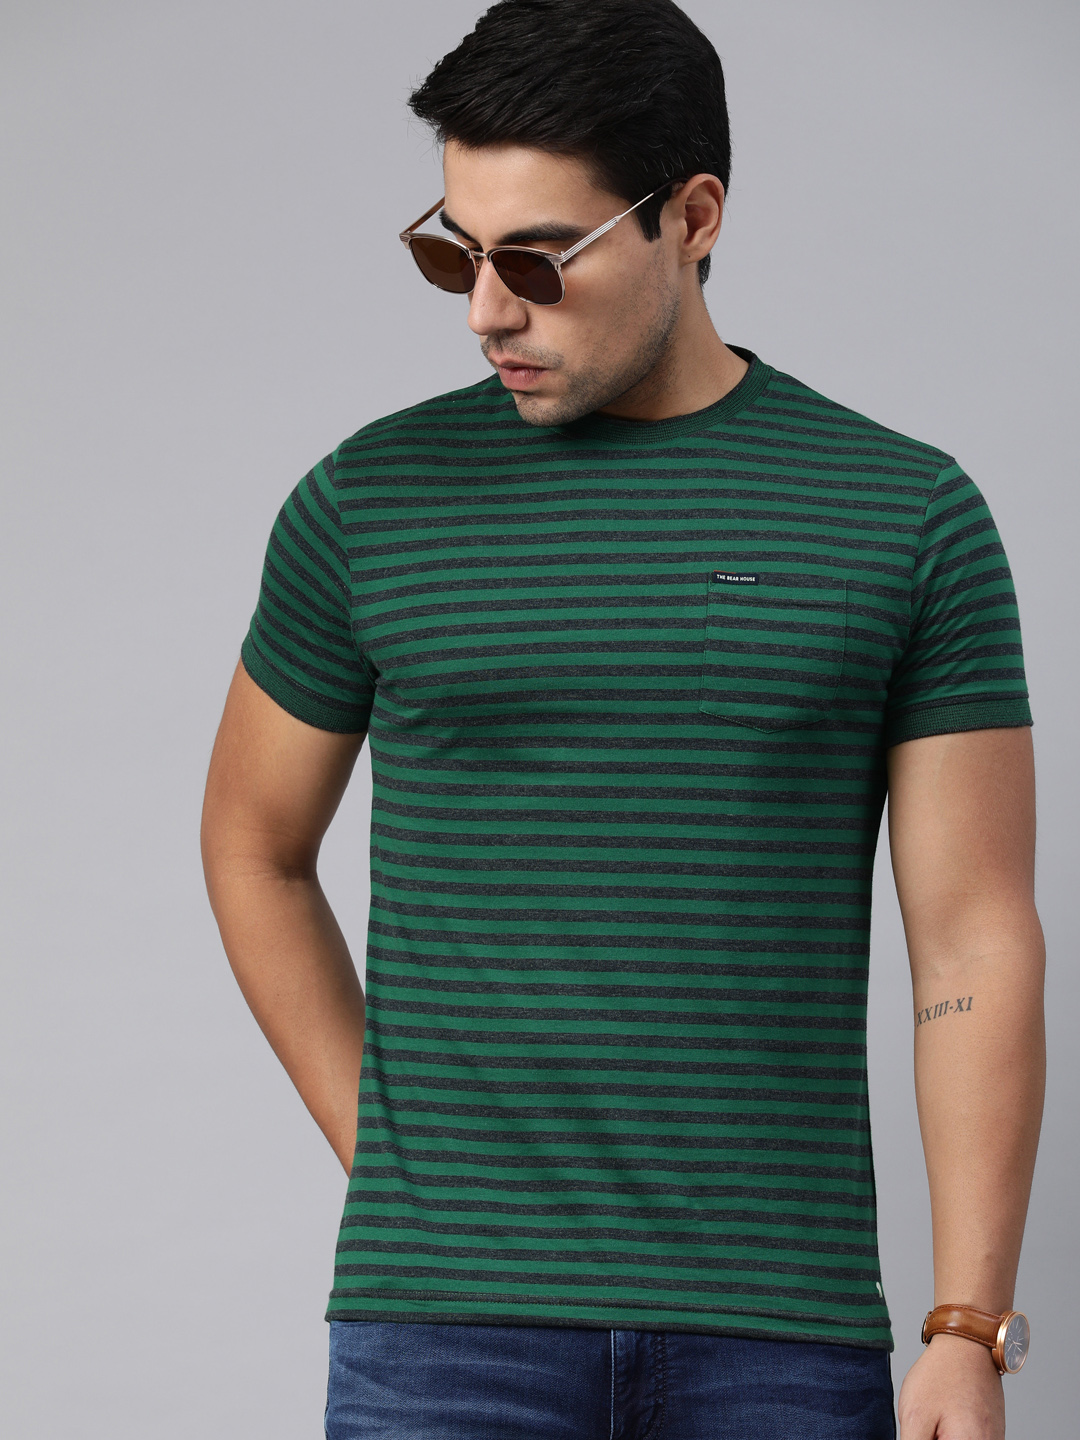 The Bear House | Round Neck Striped T-Shirt